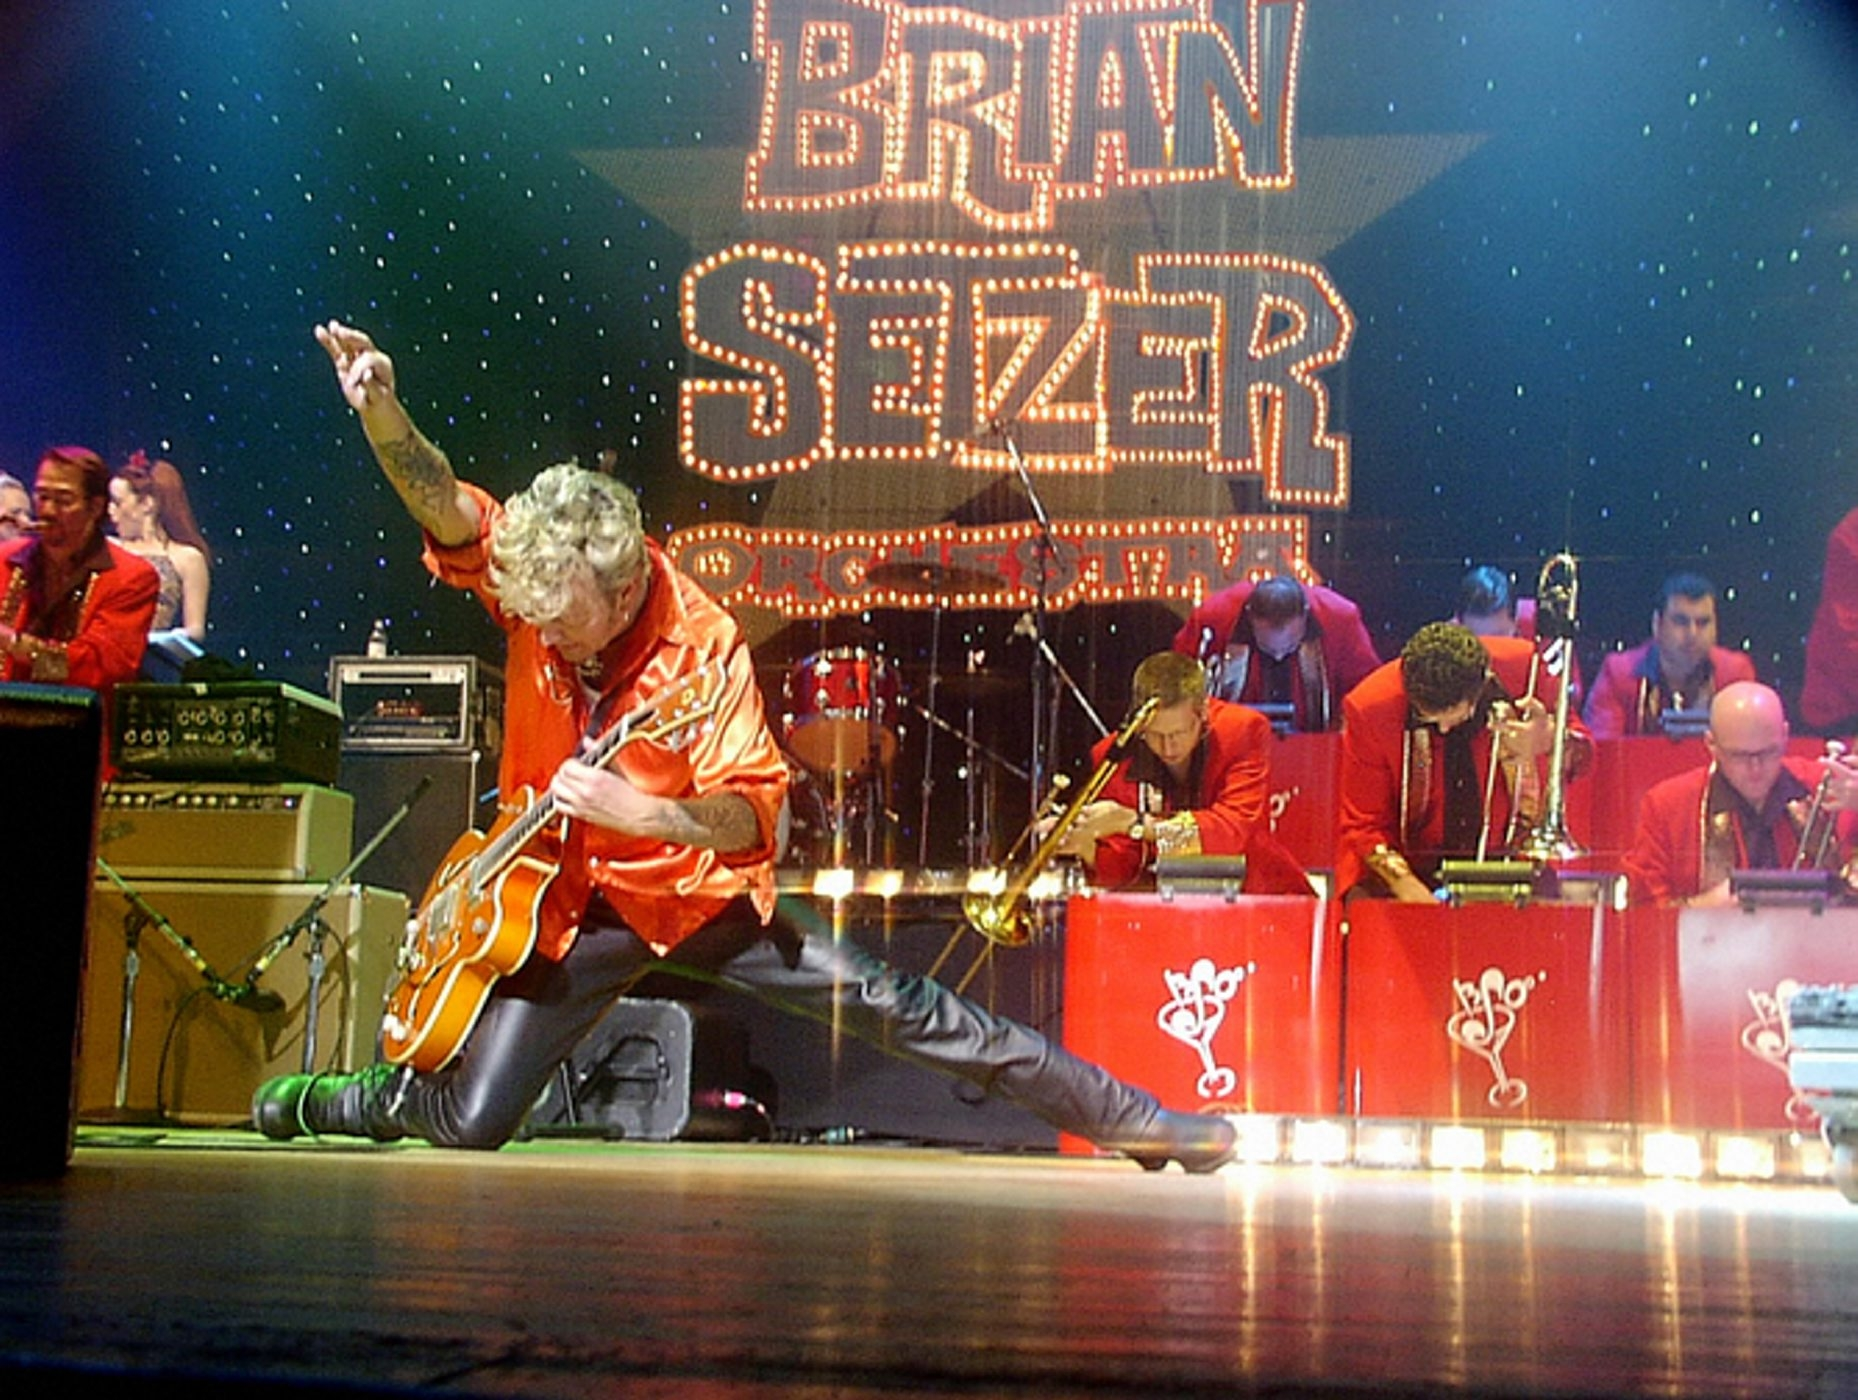 The Brian Setzer Orchestra: Christmas Rocks 10th Anniversary Tour will be at the UB Center for the Arts on Nov. 27.